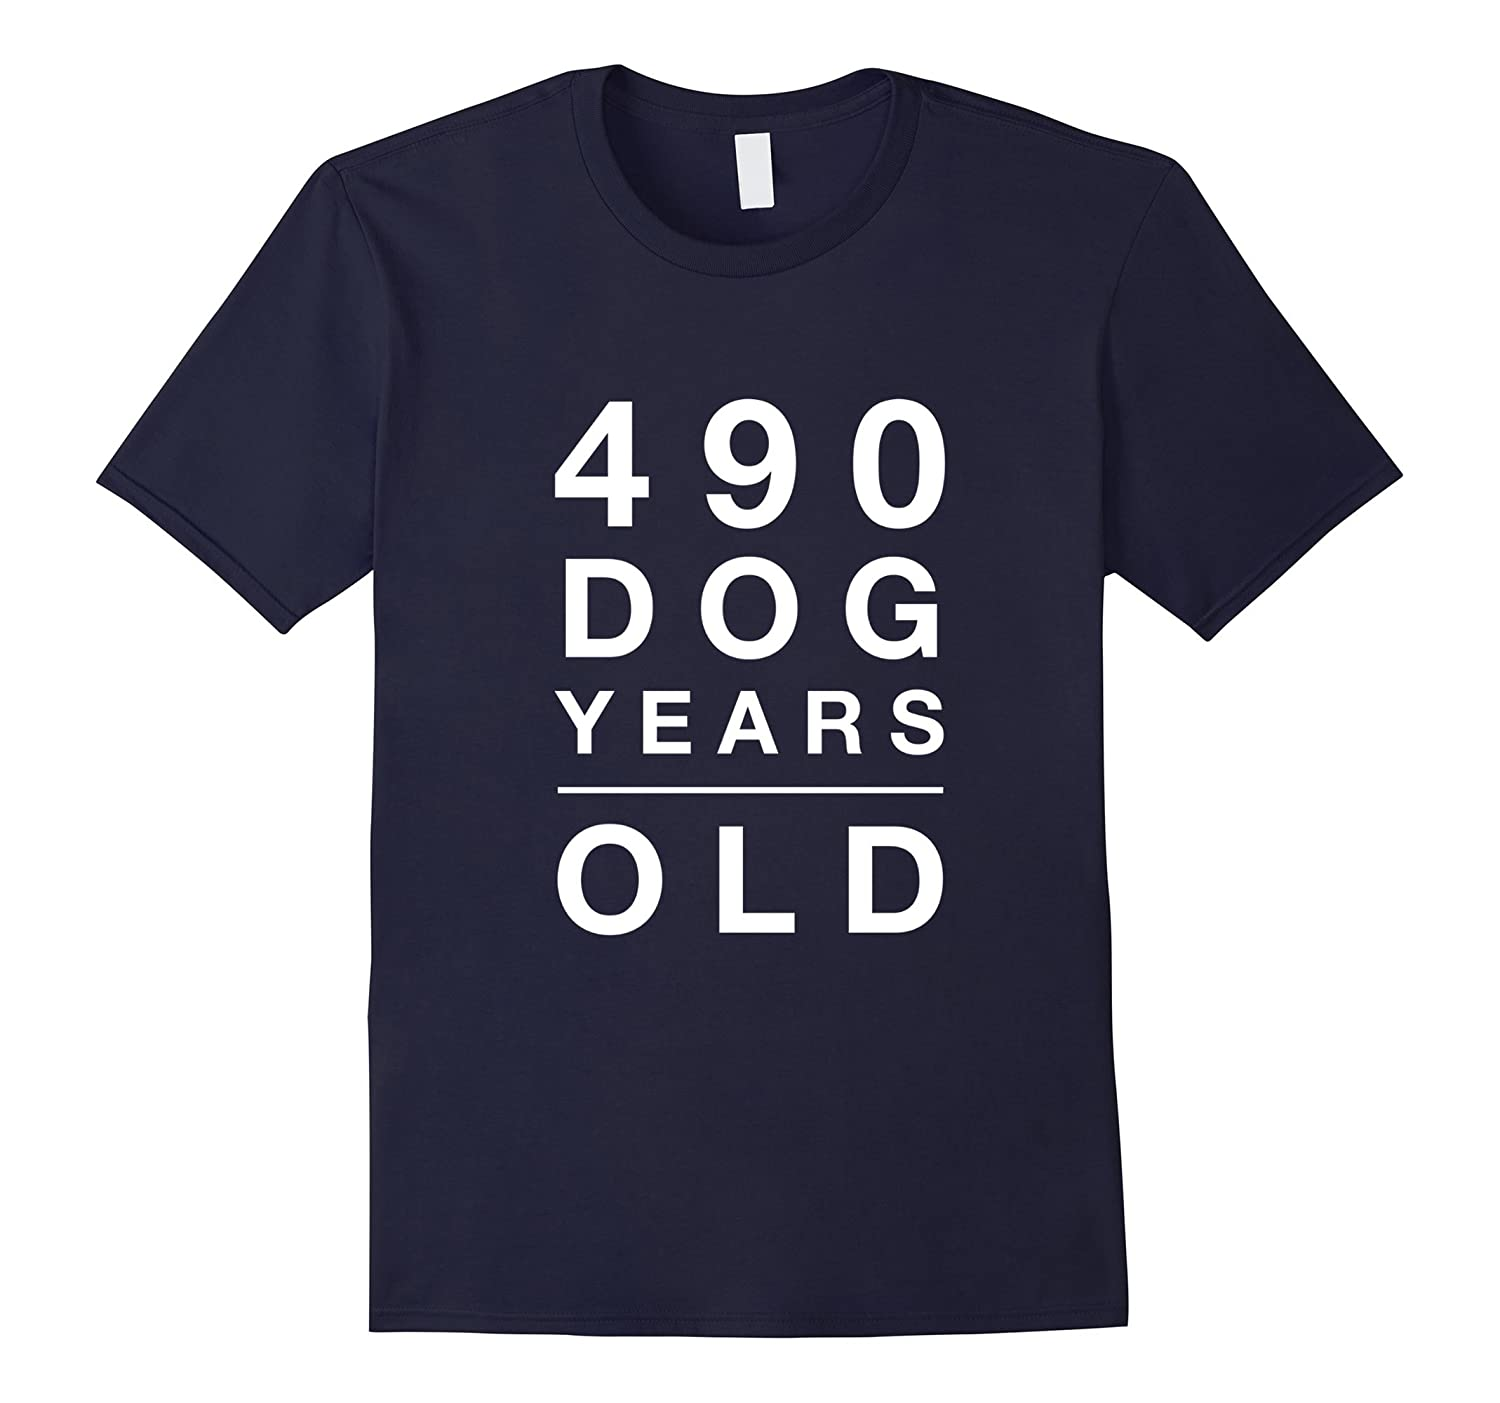 490 Dog Years Old Funny 70th Birthday Gift TShirt-TH